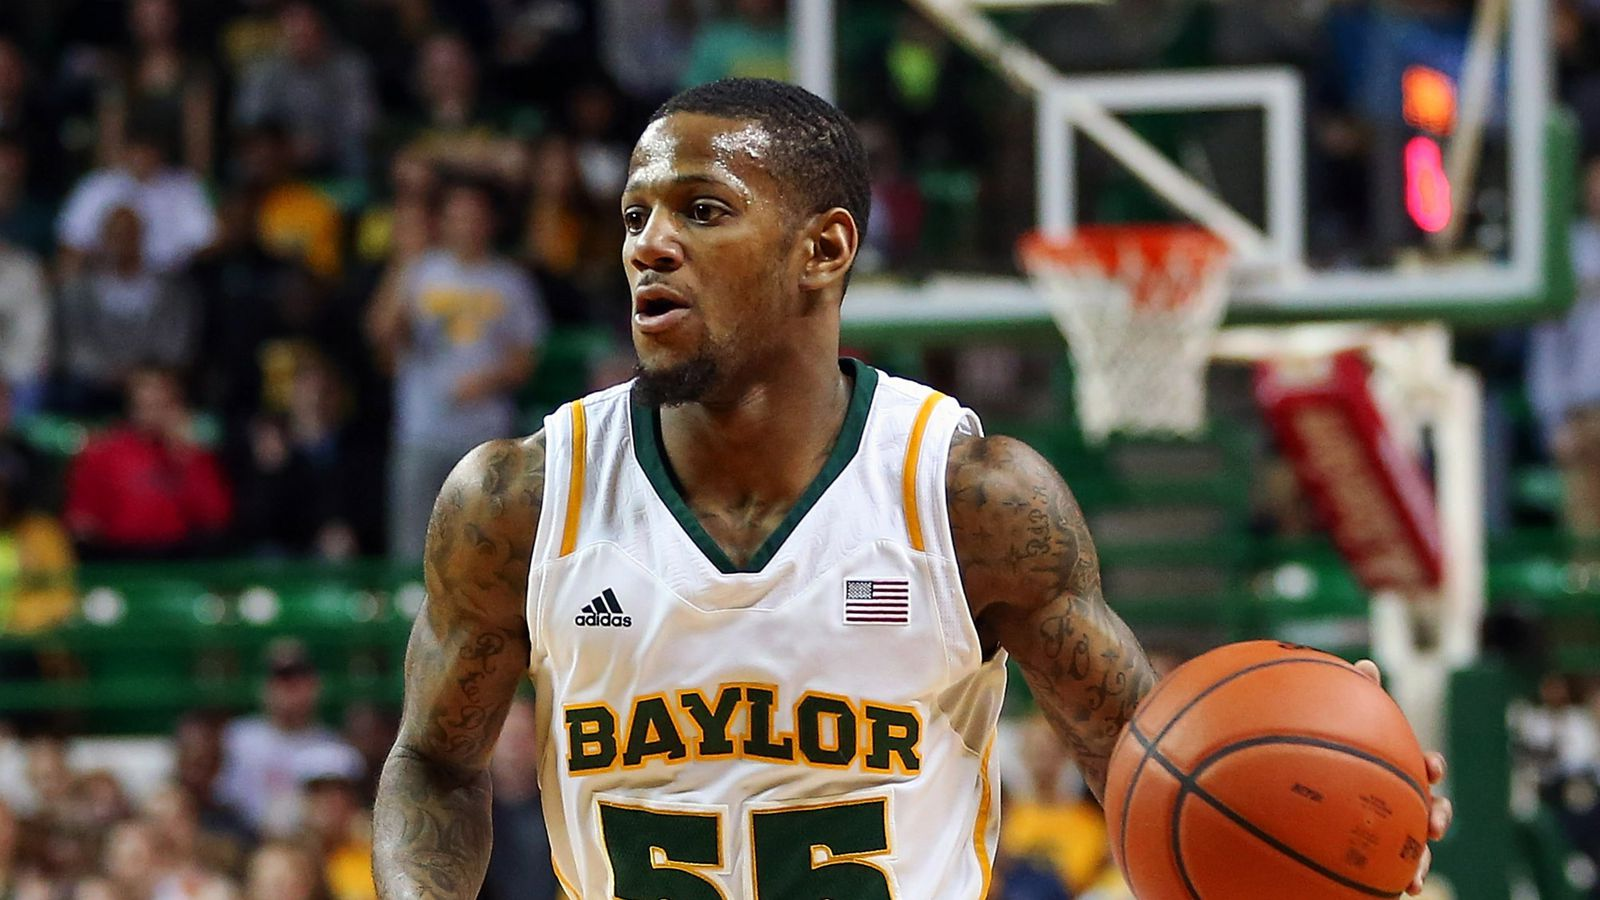 Source Nba D League Players Have Large Buy Out Clauses